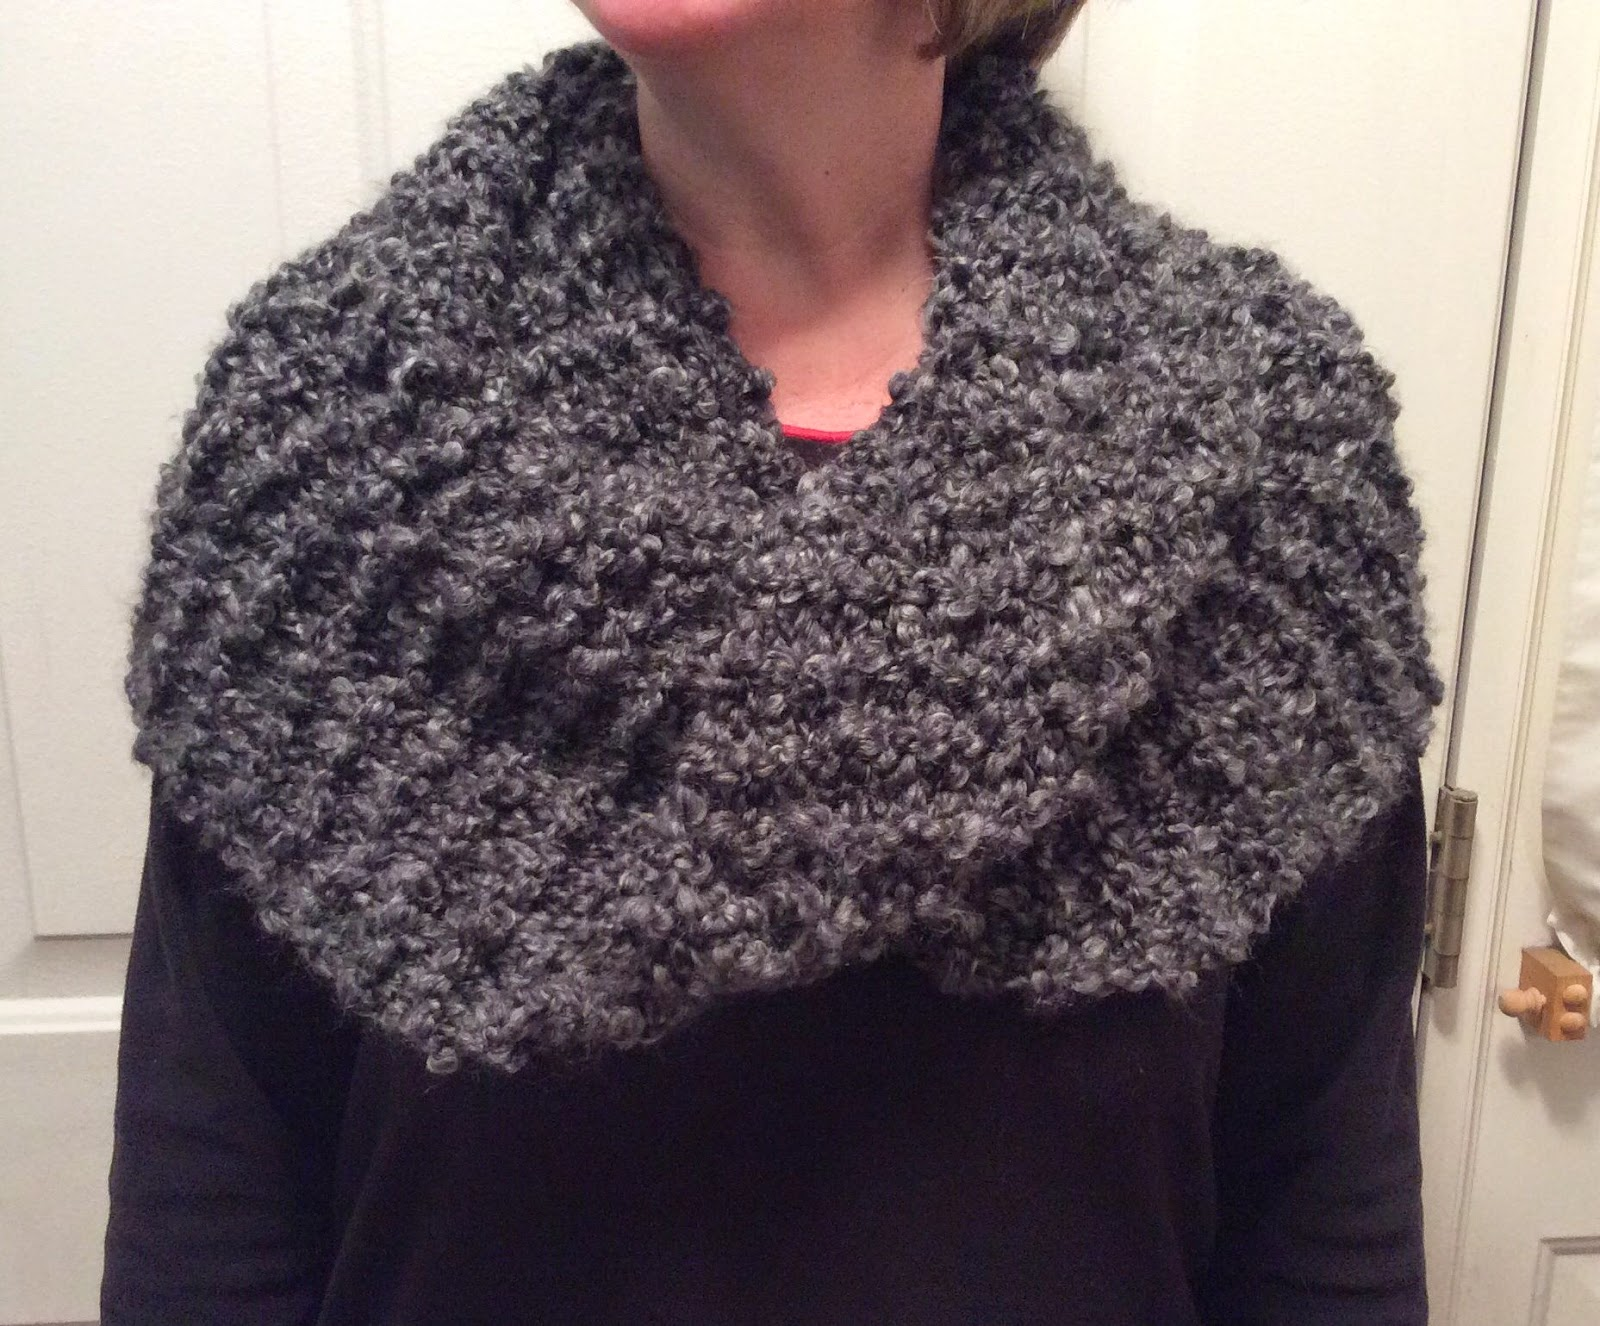 Mobius Wrap Knitting Pattern : Knitting with Schnapps: Schnapps Mobius Shawl!